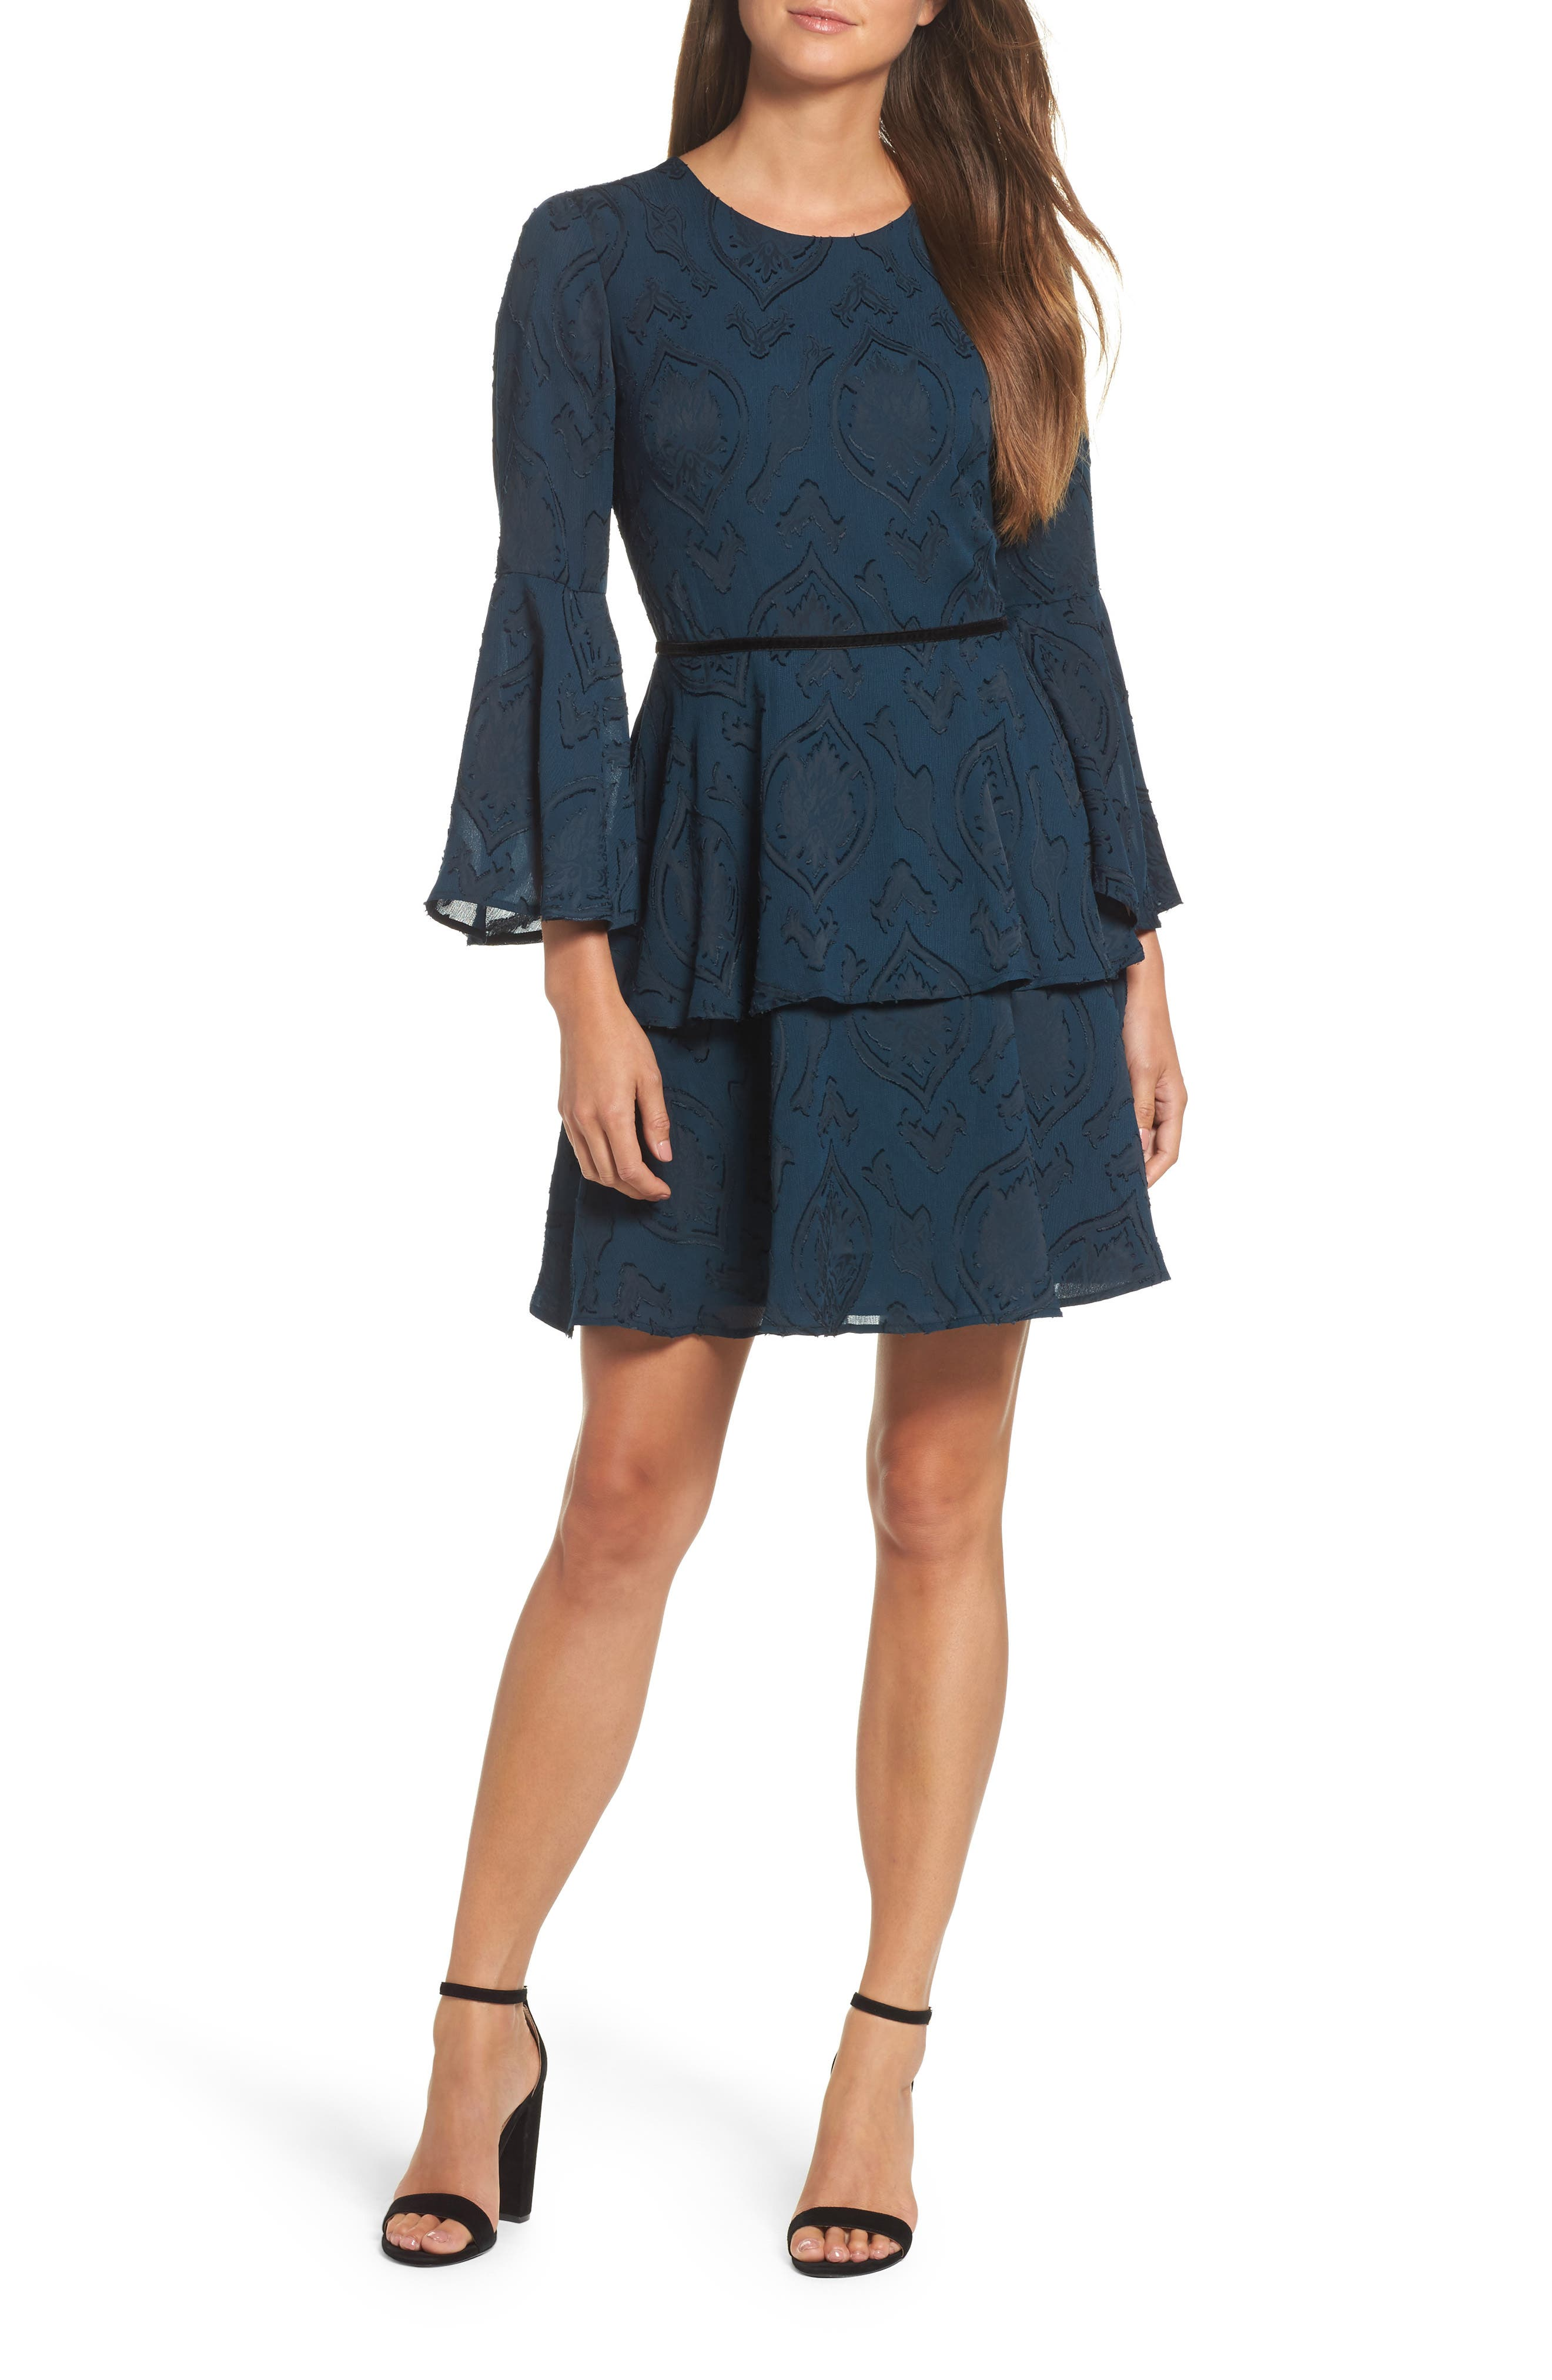 Tiered Chiffon Fit & Flare Dress,                         Main,                         color, Teal/ Black